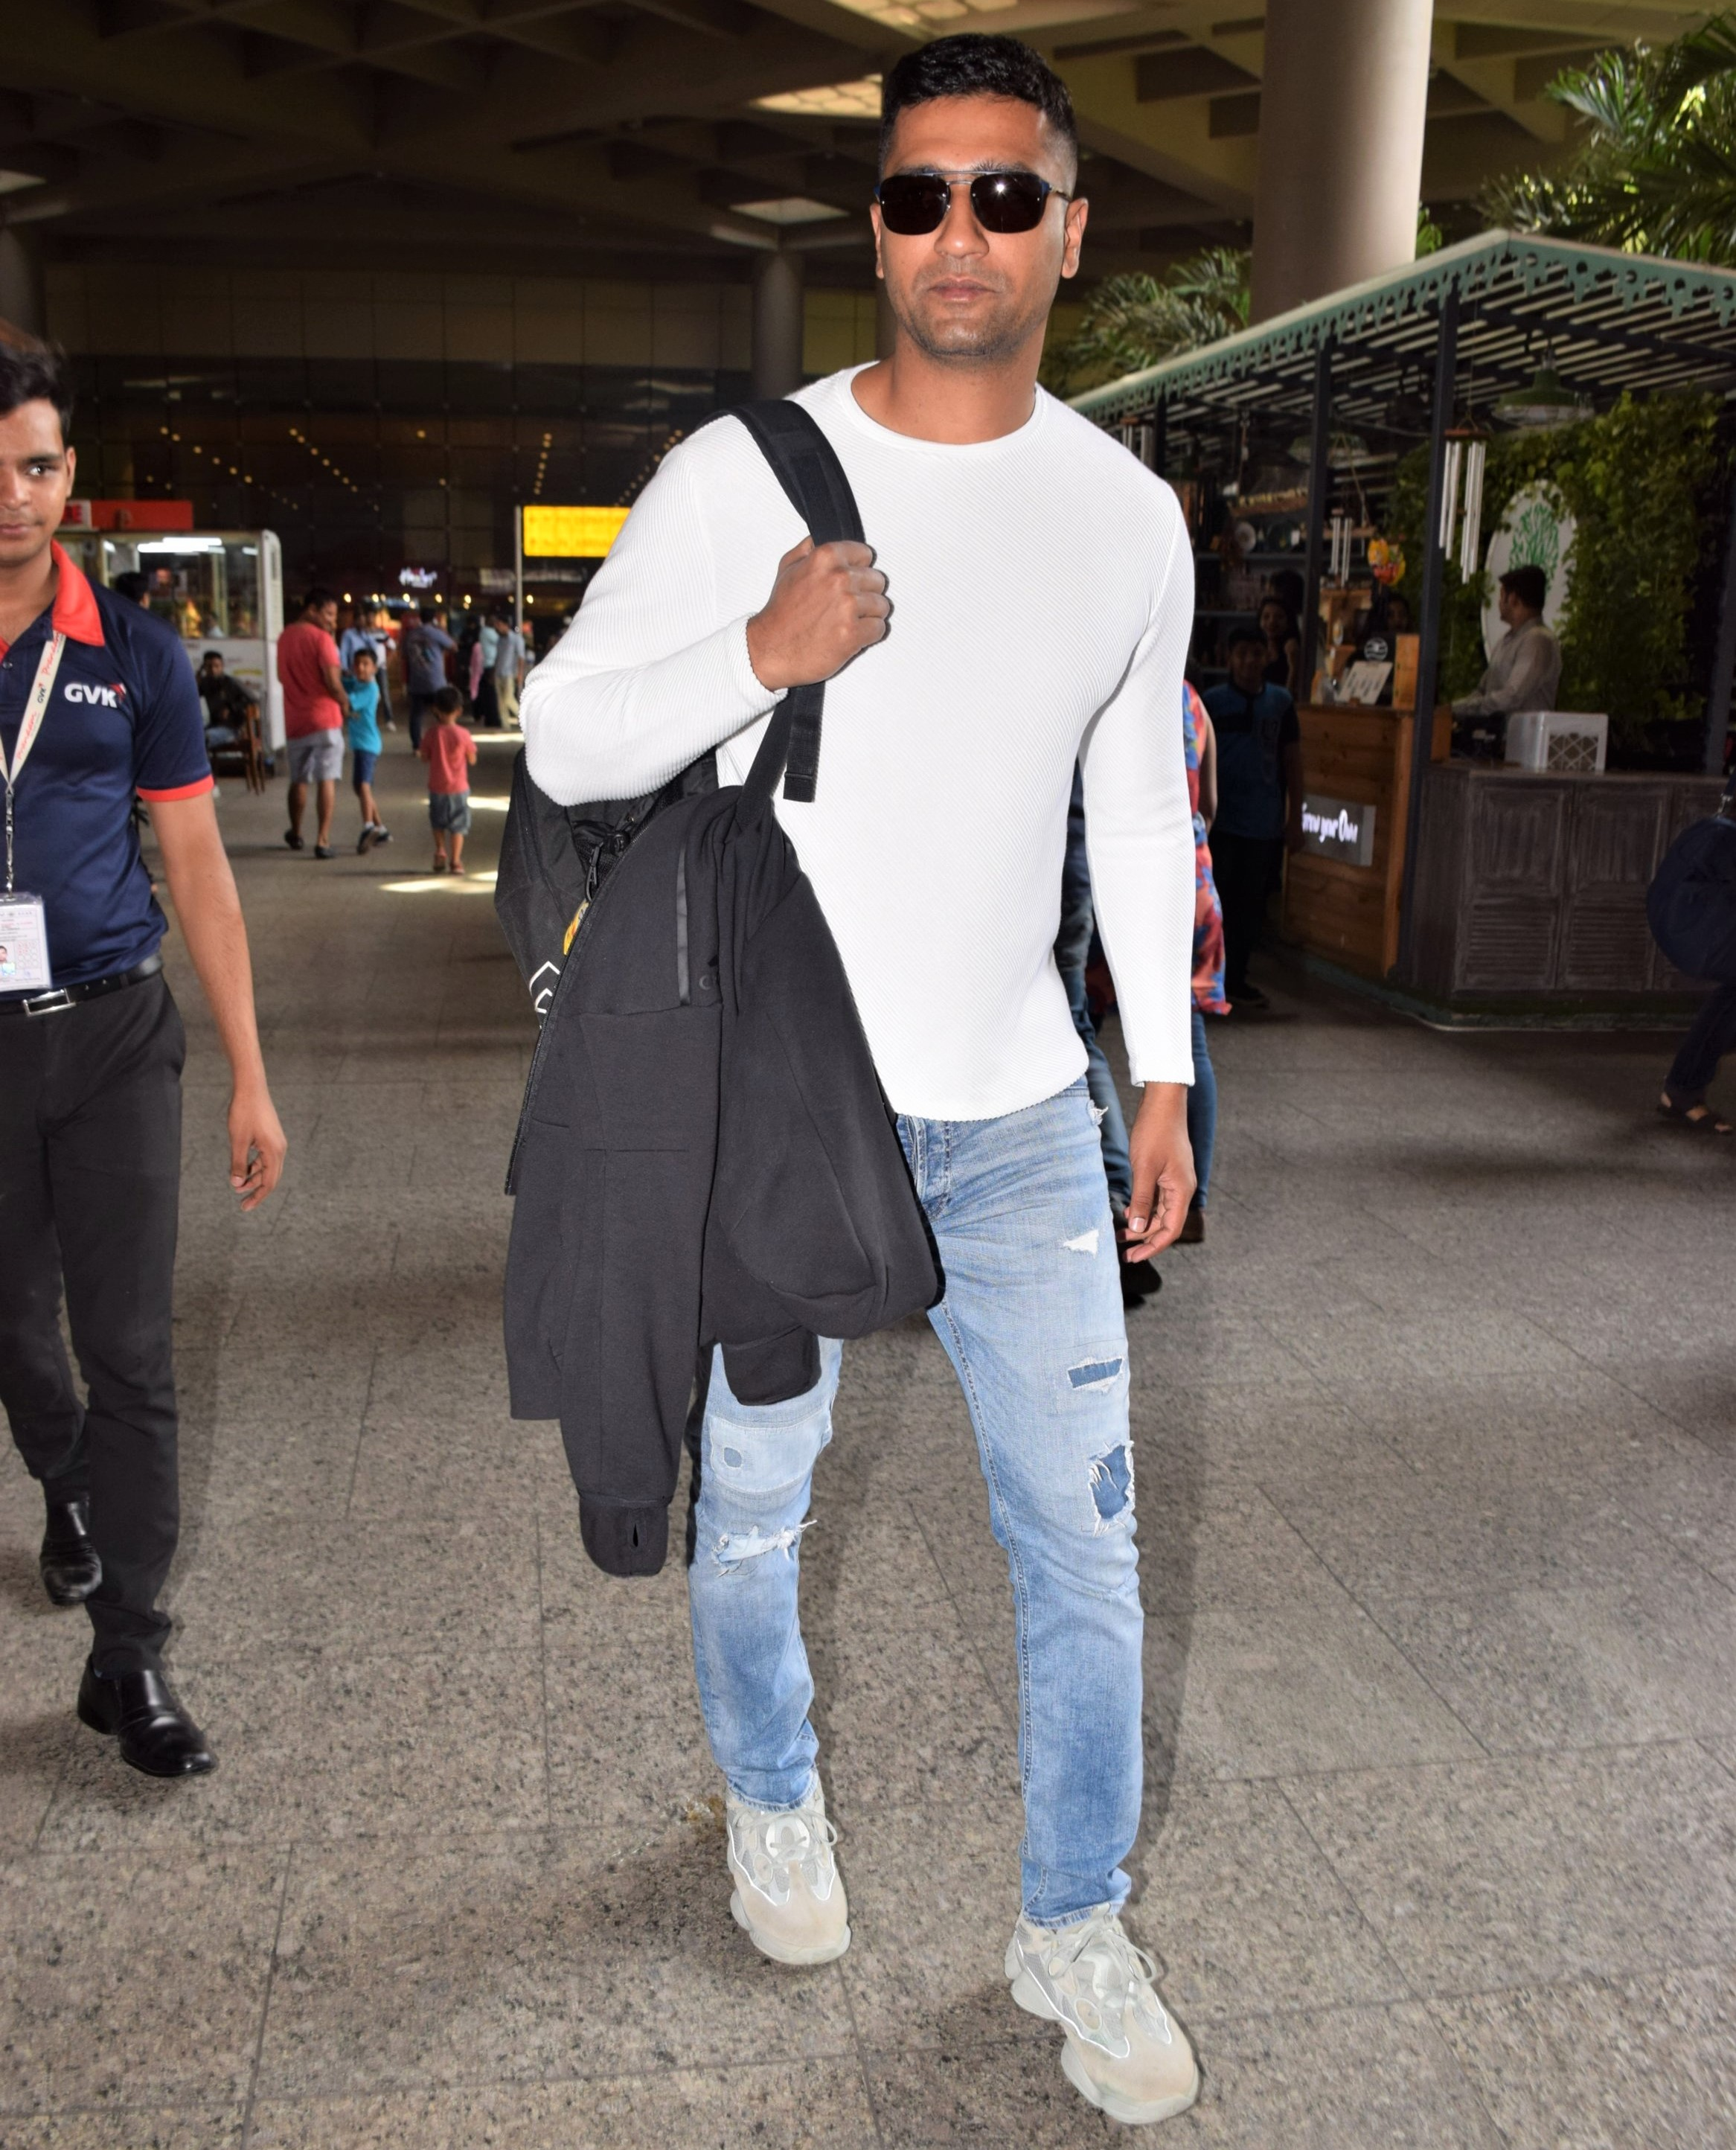 Vicky Kaushal Spotted At The Airport, Fans Notice Scar From Injury